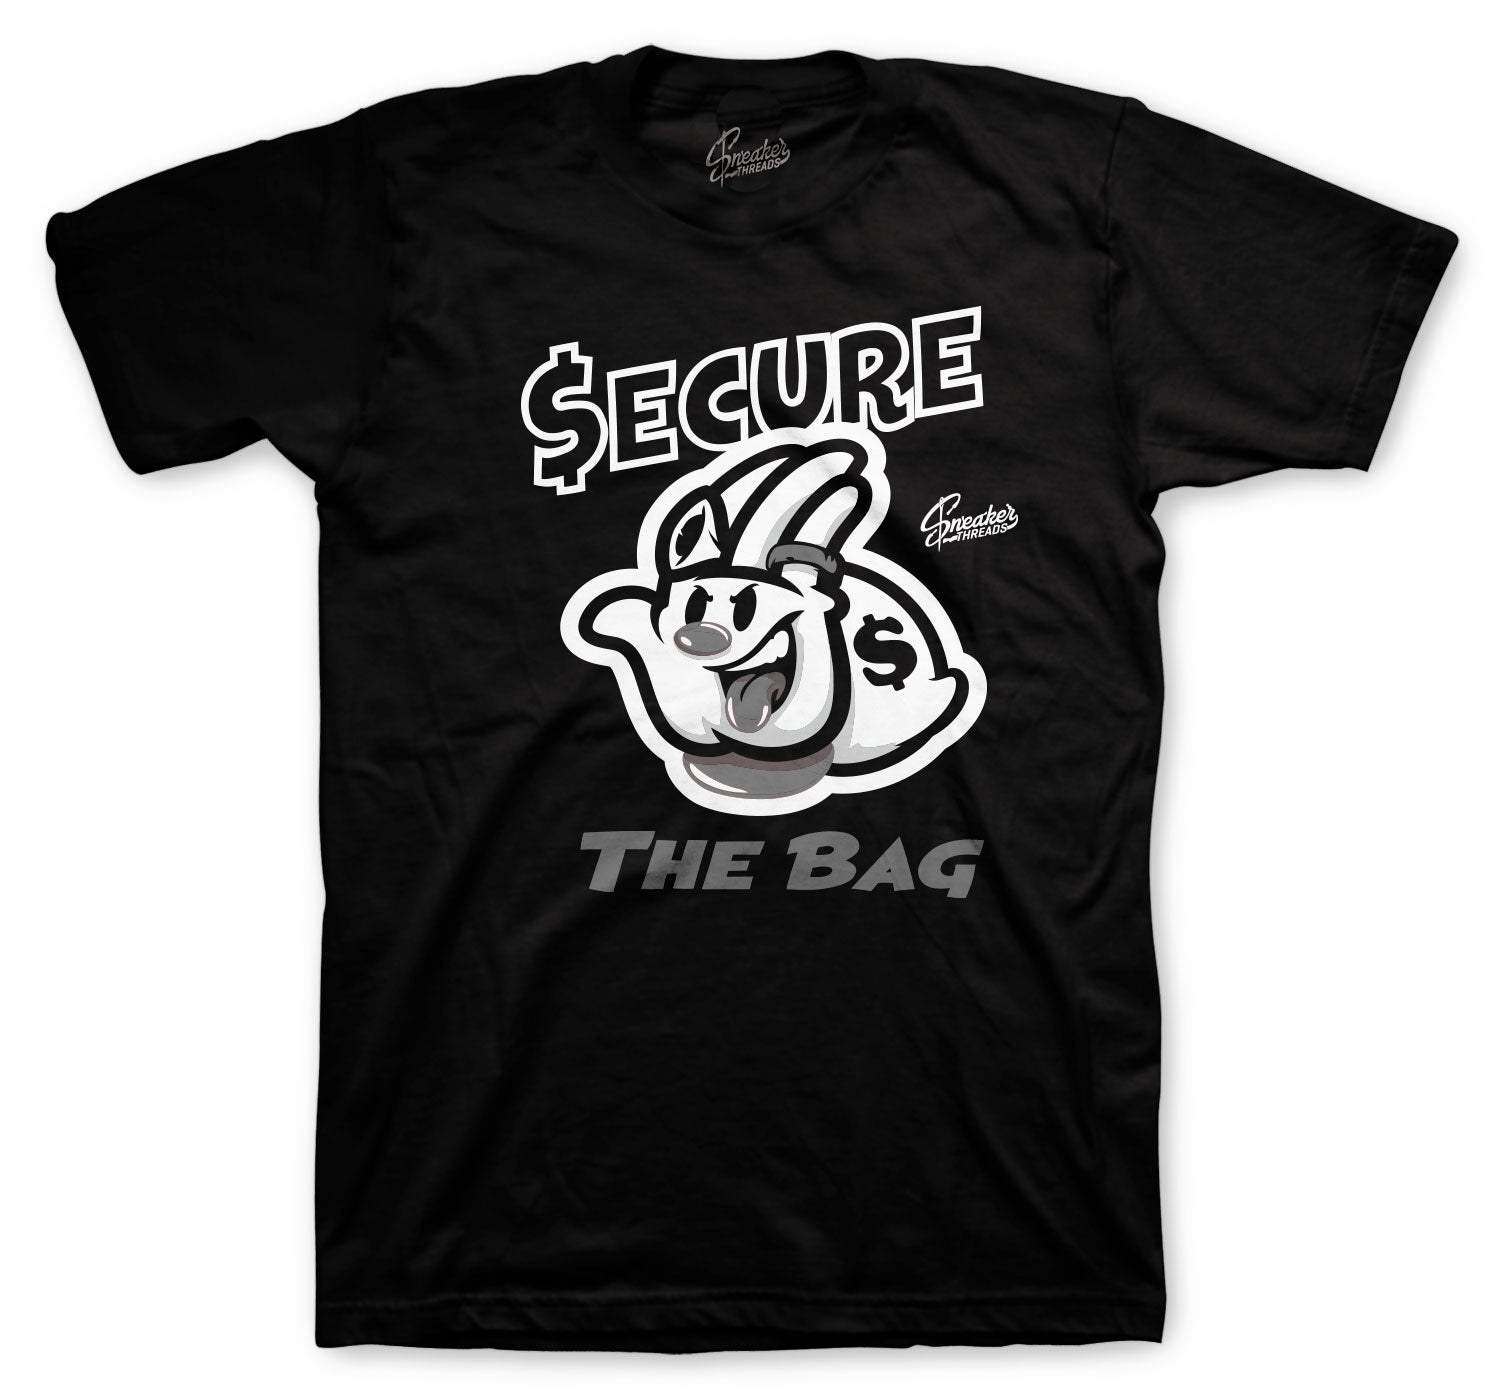 Jordan 4 Black Cat Secure The Bag Shirt